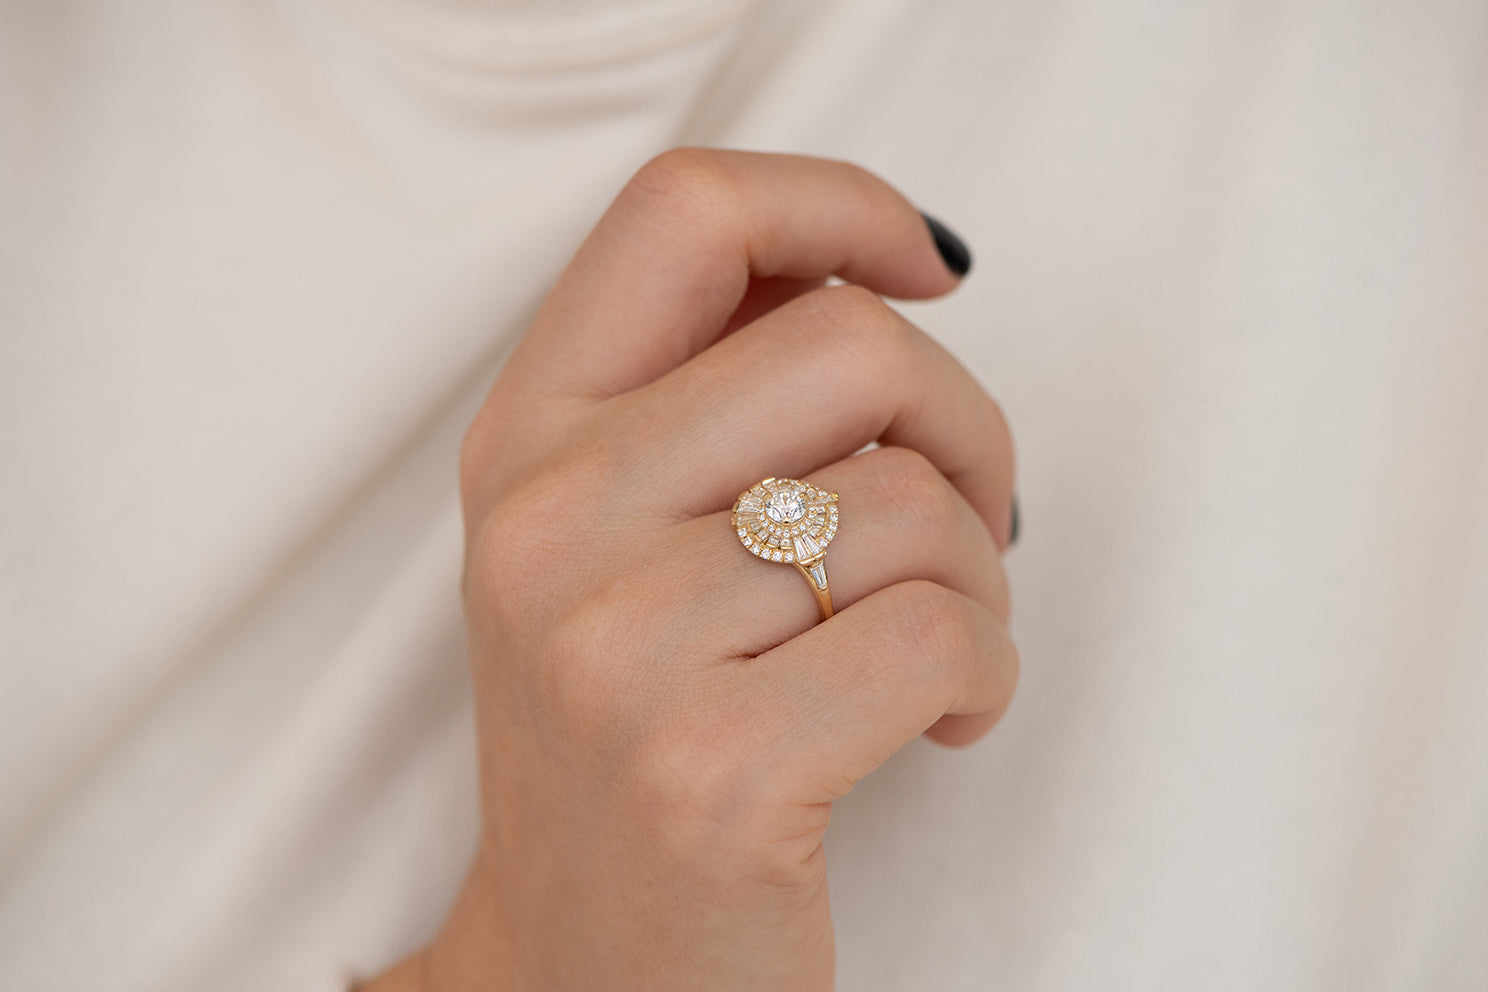 Round Diamond Cluster Ring with Asymmetric Frills Up Close on Hand